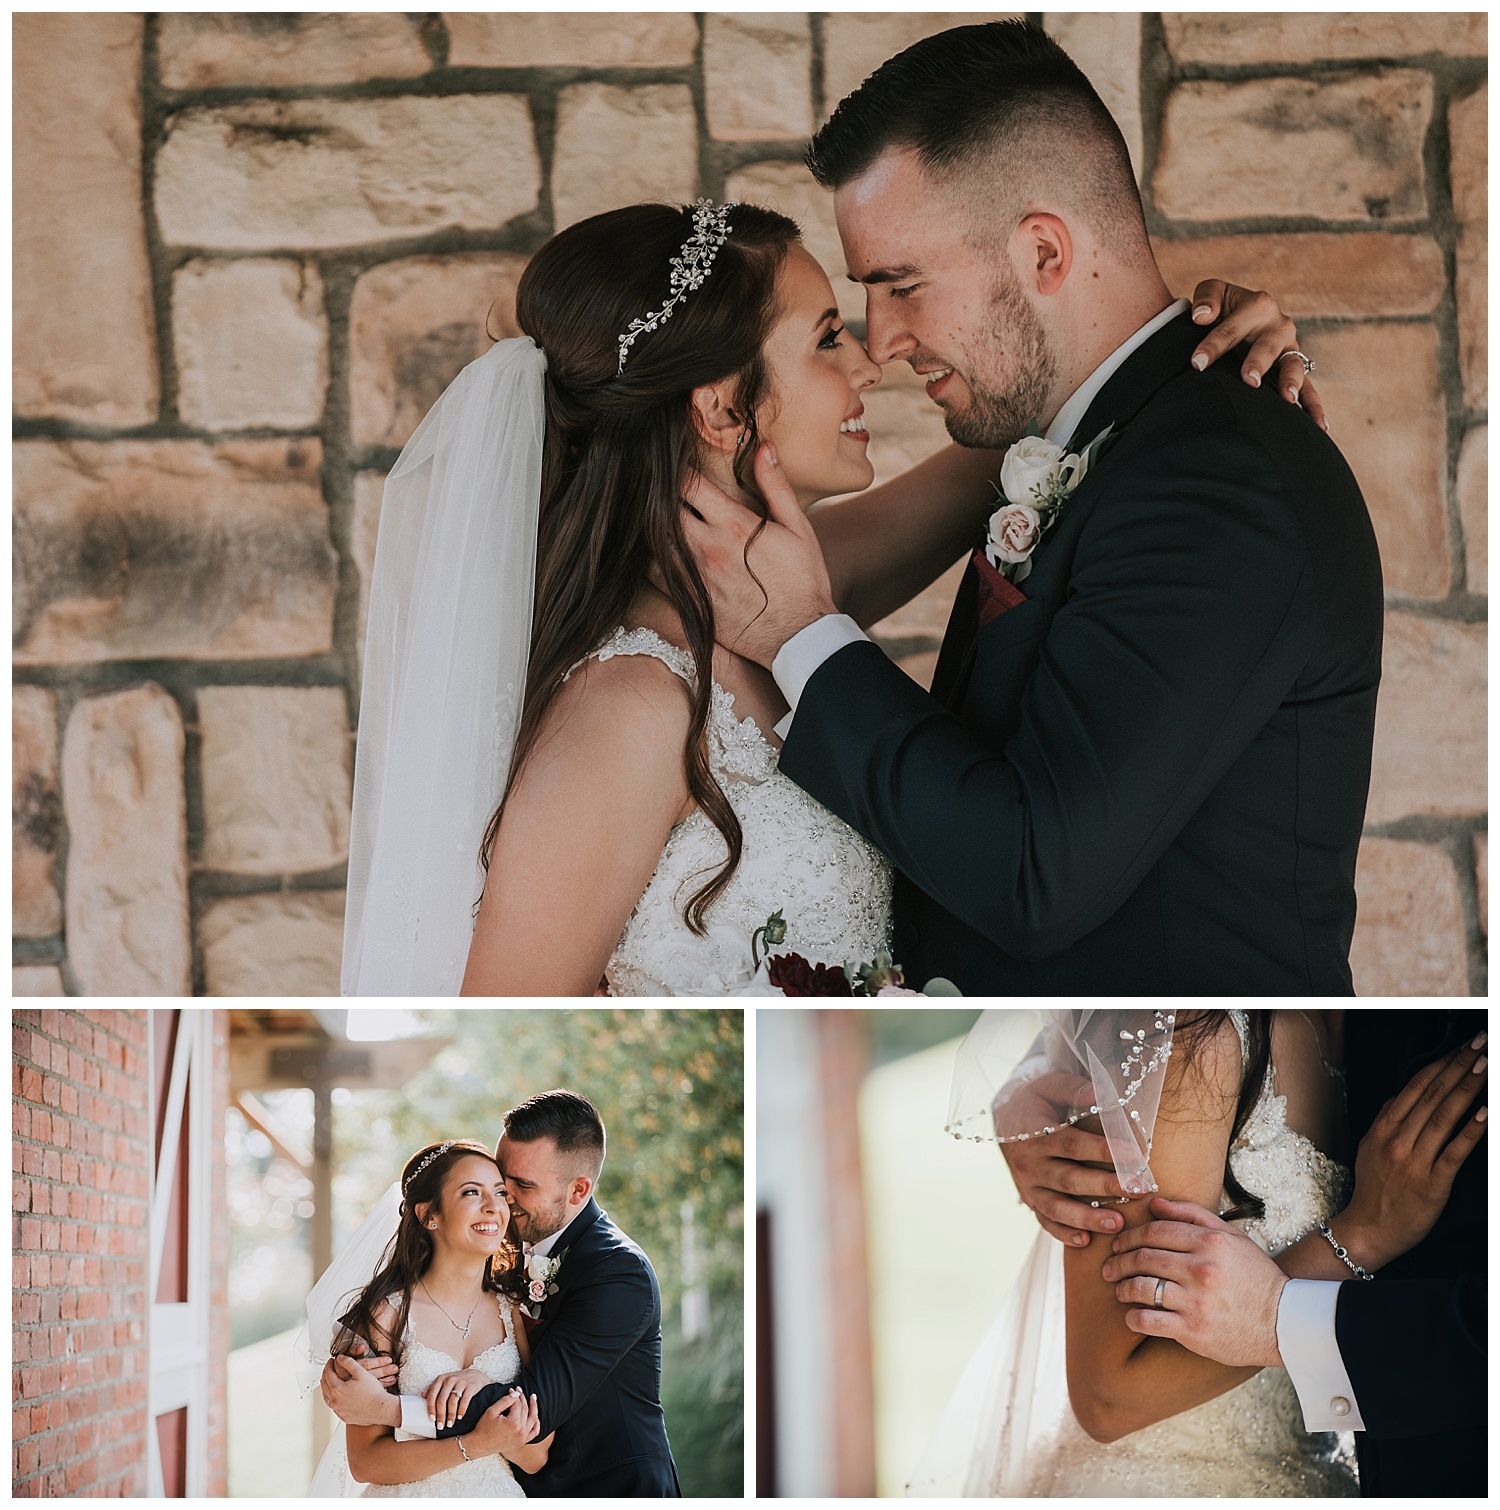 Brookside_Gardens_Colorado_Wedding_Photography_Apollo_Fields_28.jpg